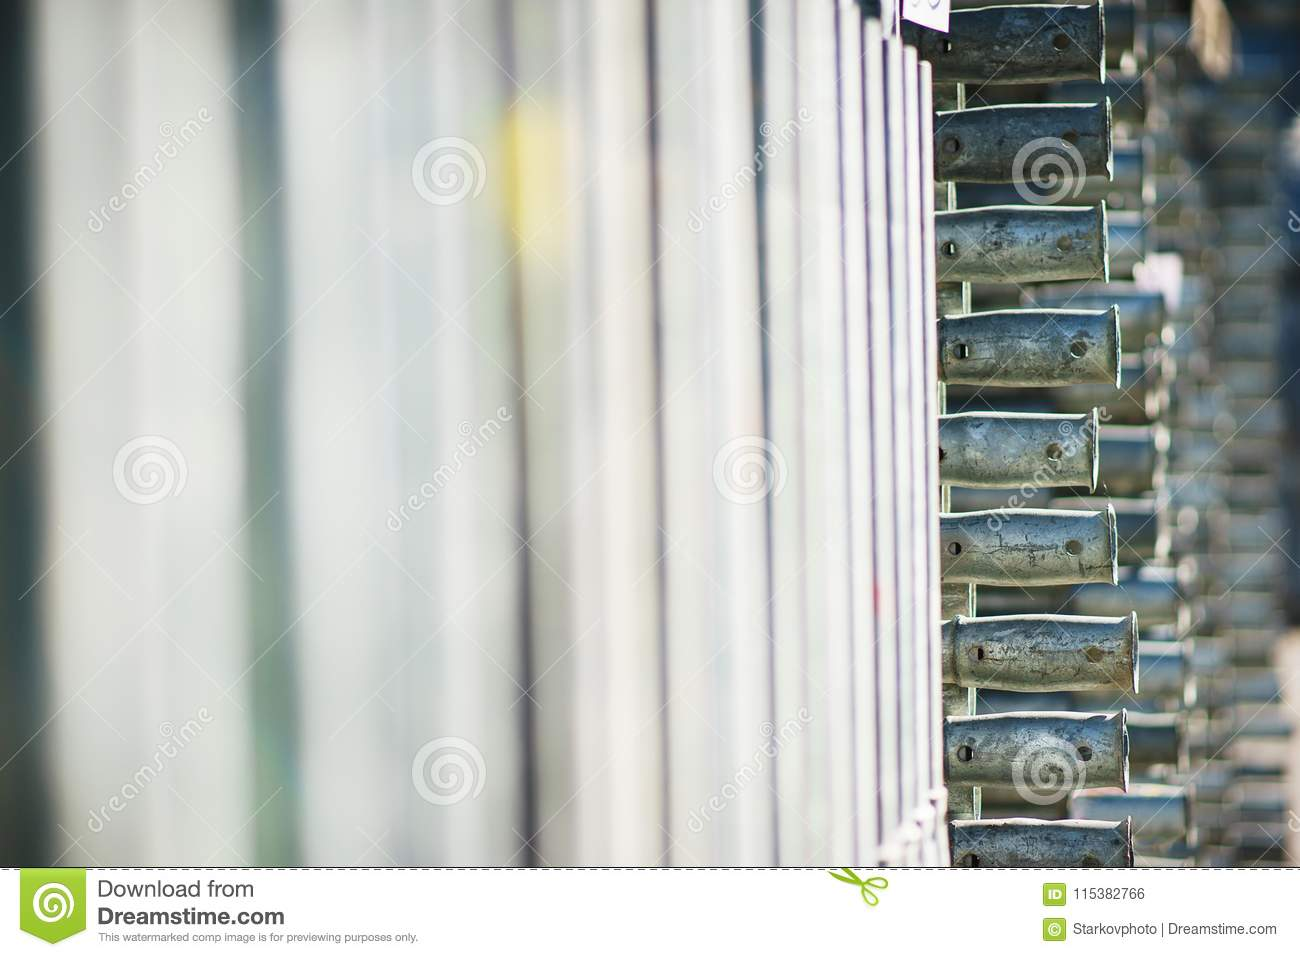 Metal Structures In A Warehouse In Stacks. Metal Supports For Scaffolding  And Formwork.